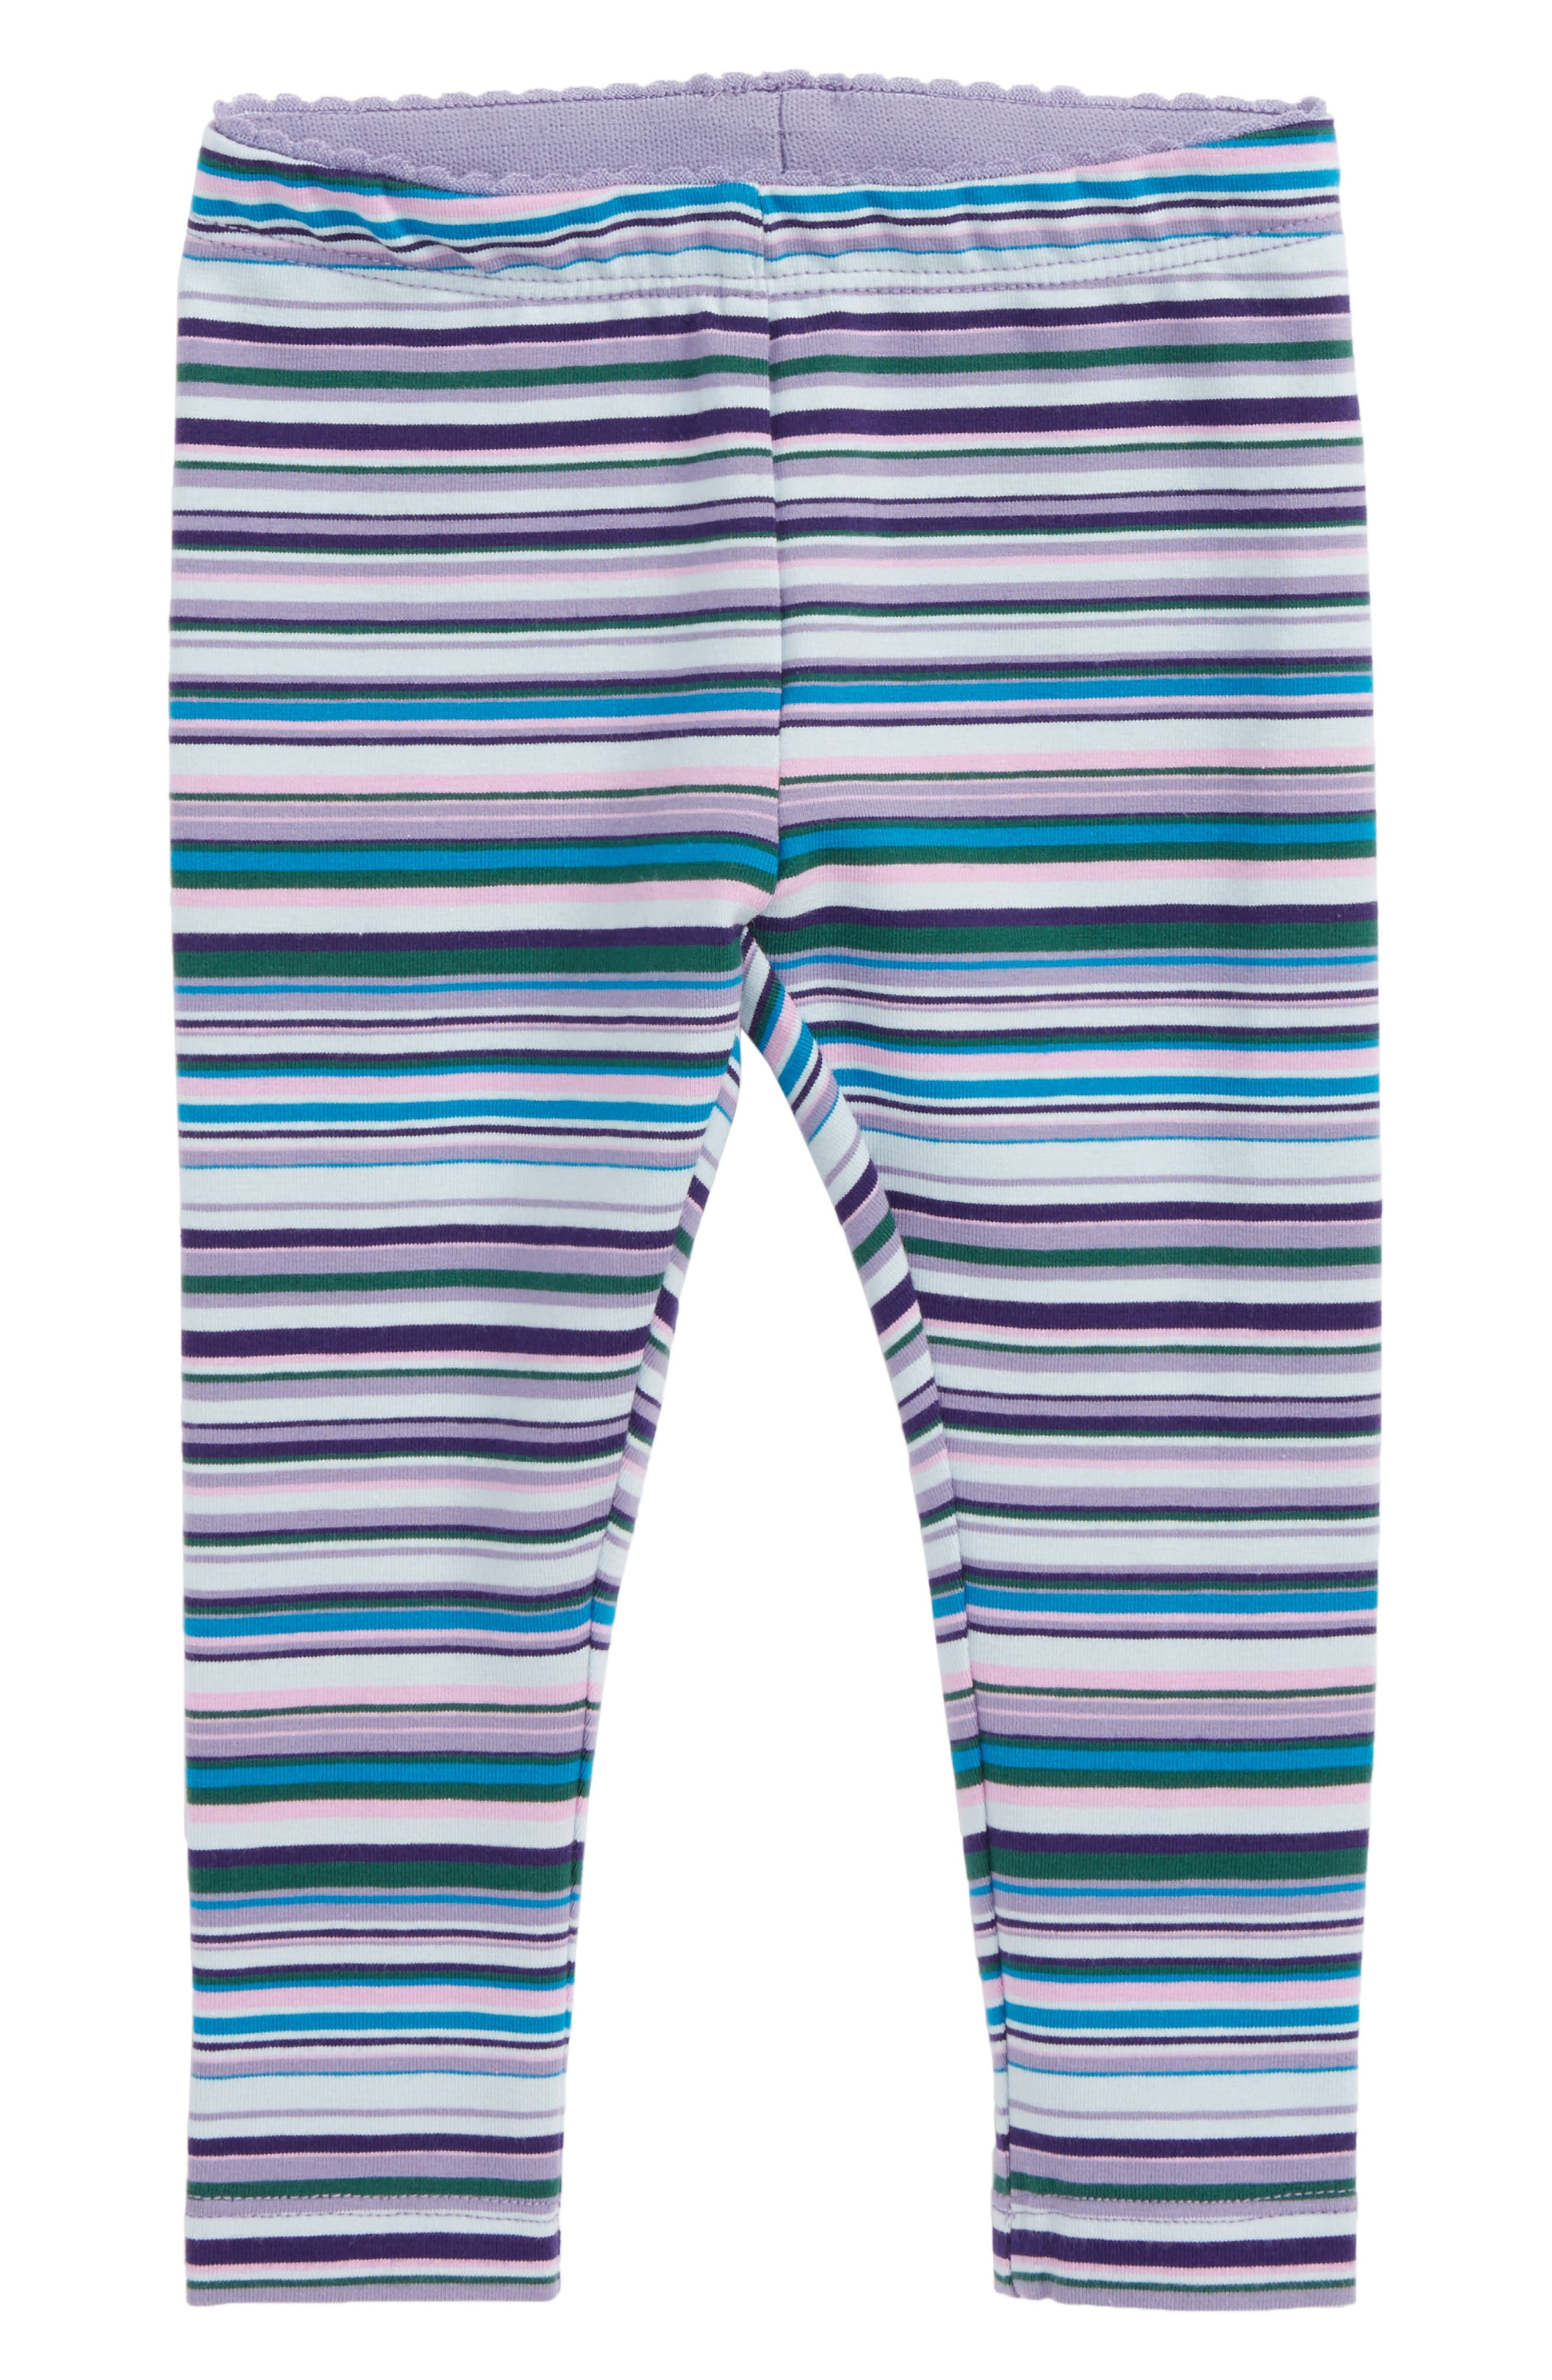 Stripe Leggings,                             Main thumbnail 1, color,                             Taffy